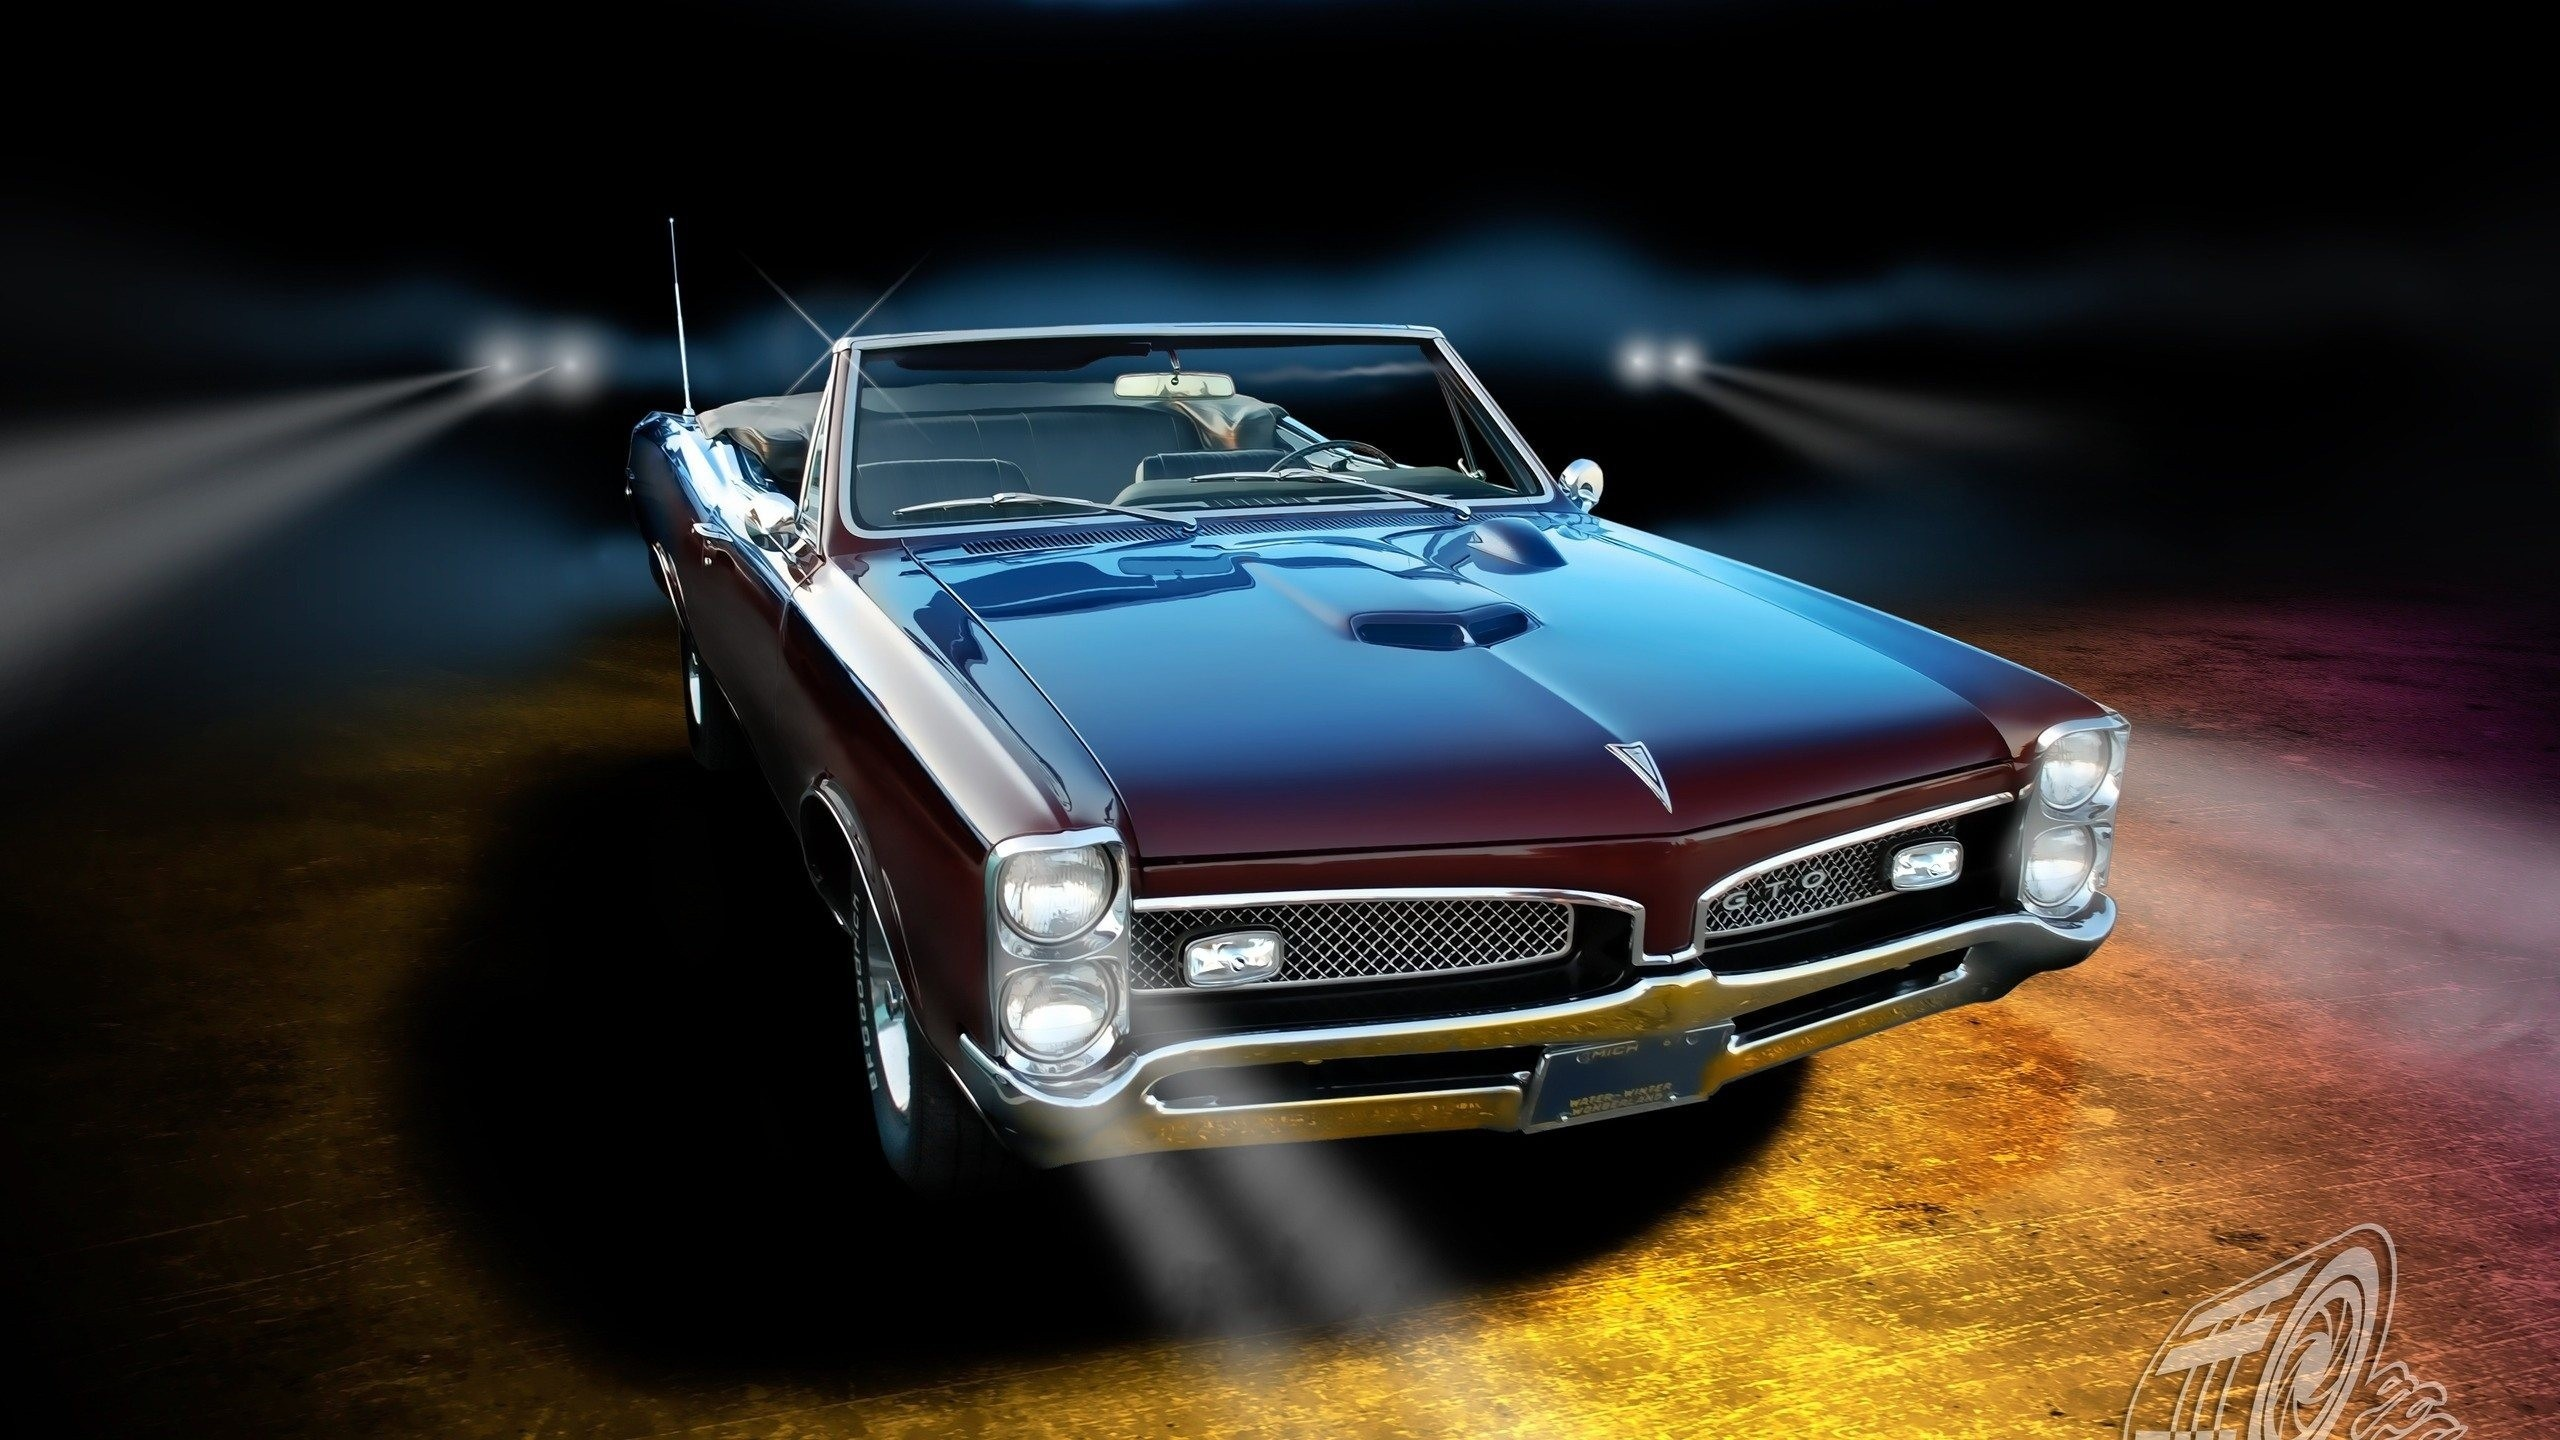 Pontiac Gto Cars And Classic Muscle Cars On Pinterest. american muscle cars  wallpaper